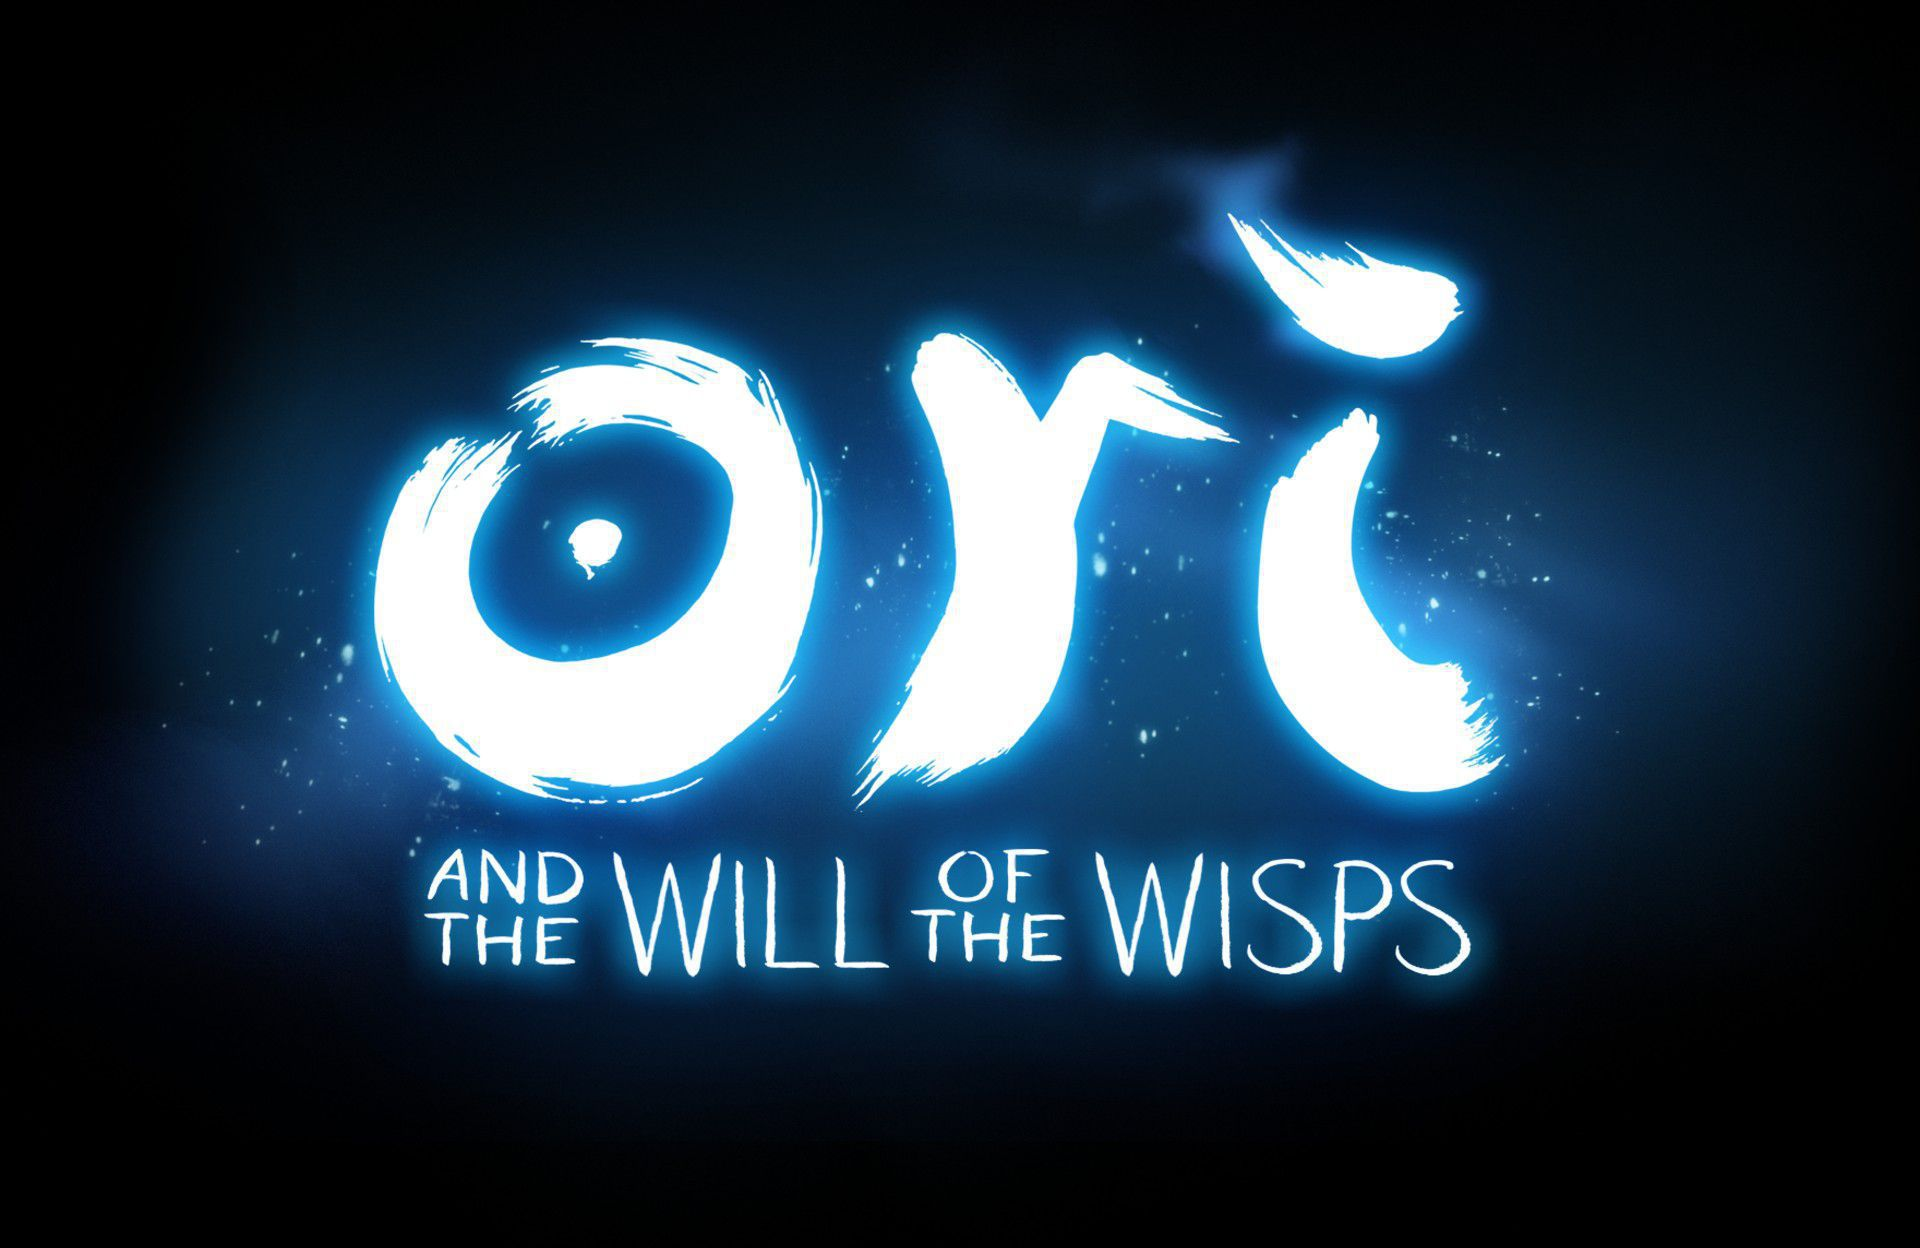 Ori And The Will Of The Wisps Wallpaper Pack